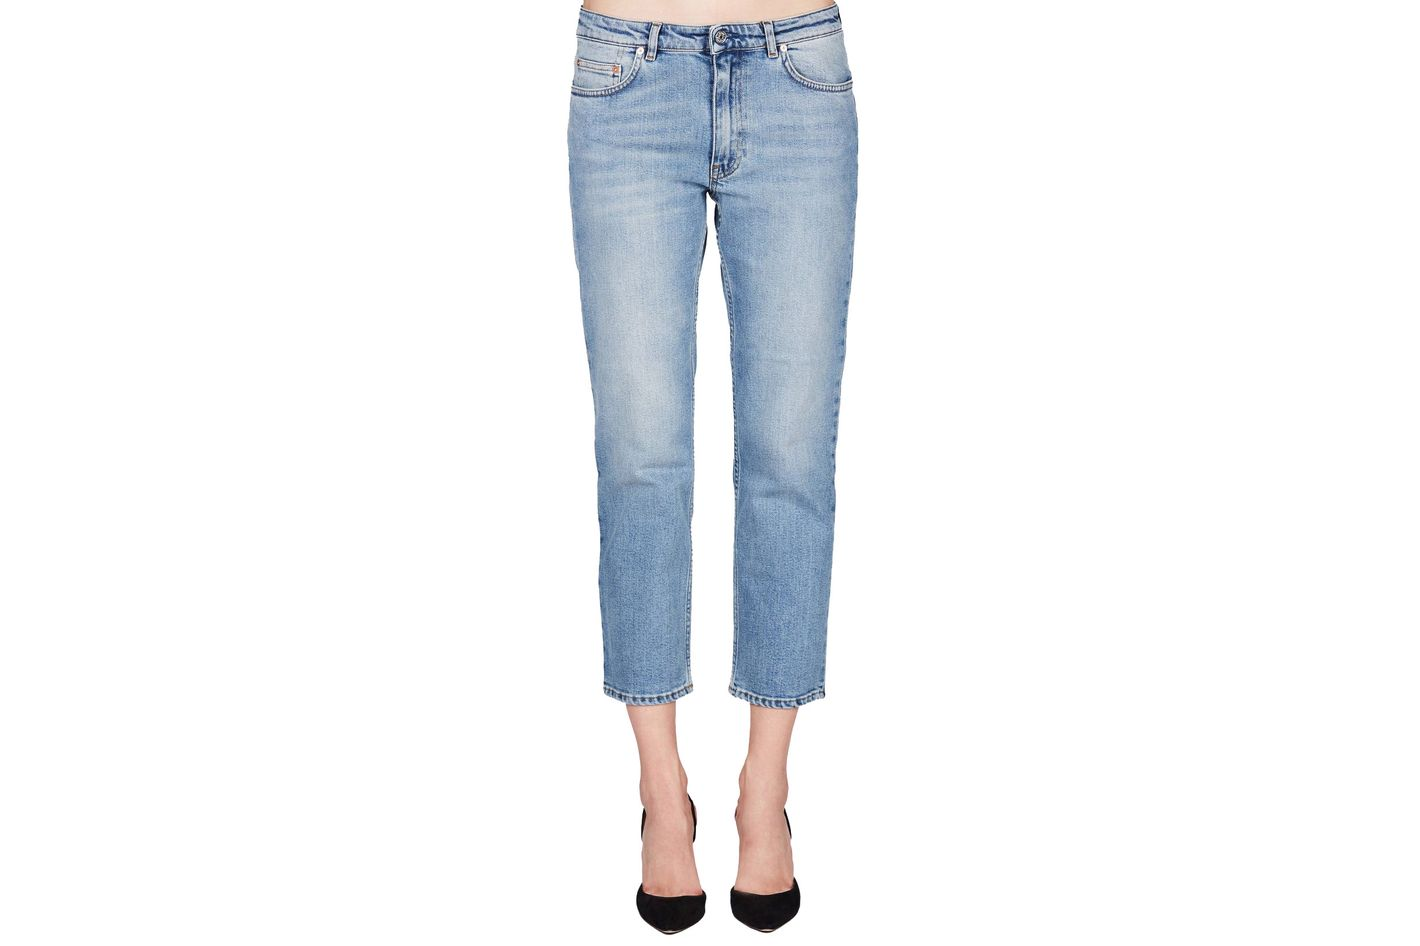 Acne Studios Row Clean Light Vintage Jeans